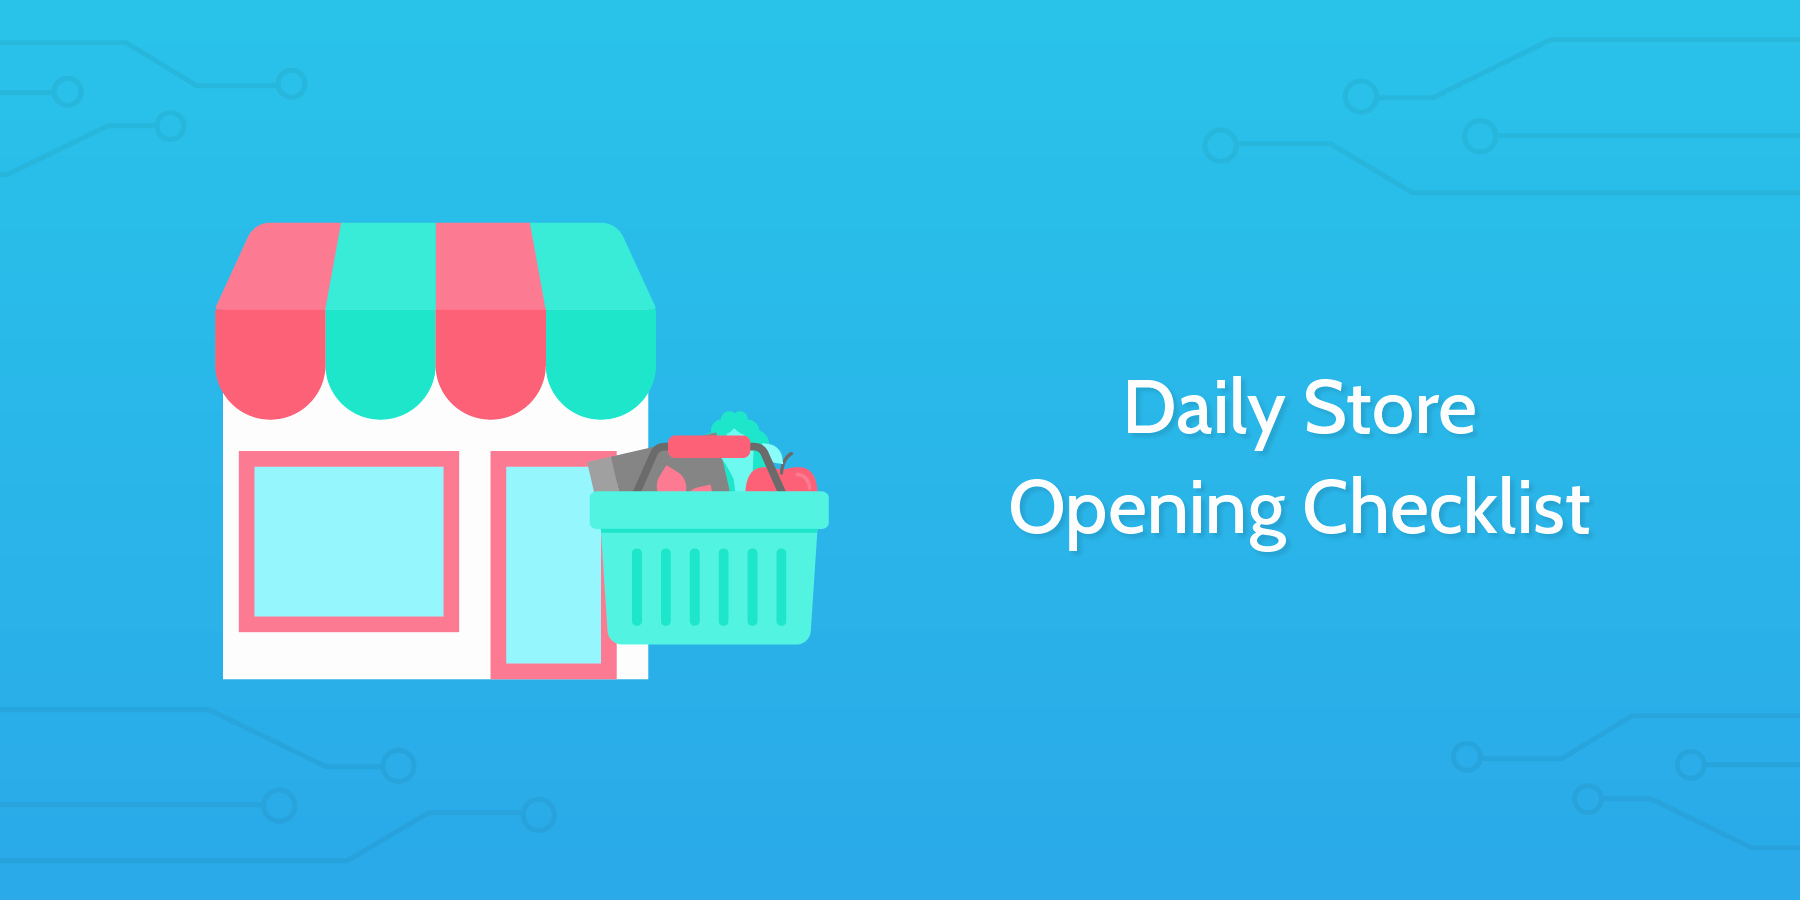 Retail Store Daily Checklist Luxury Daily Store Opening Checklist